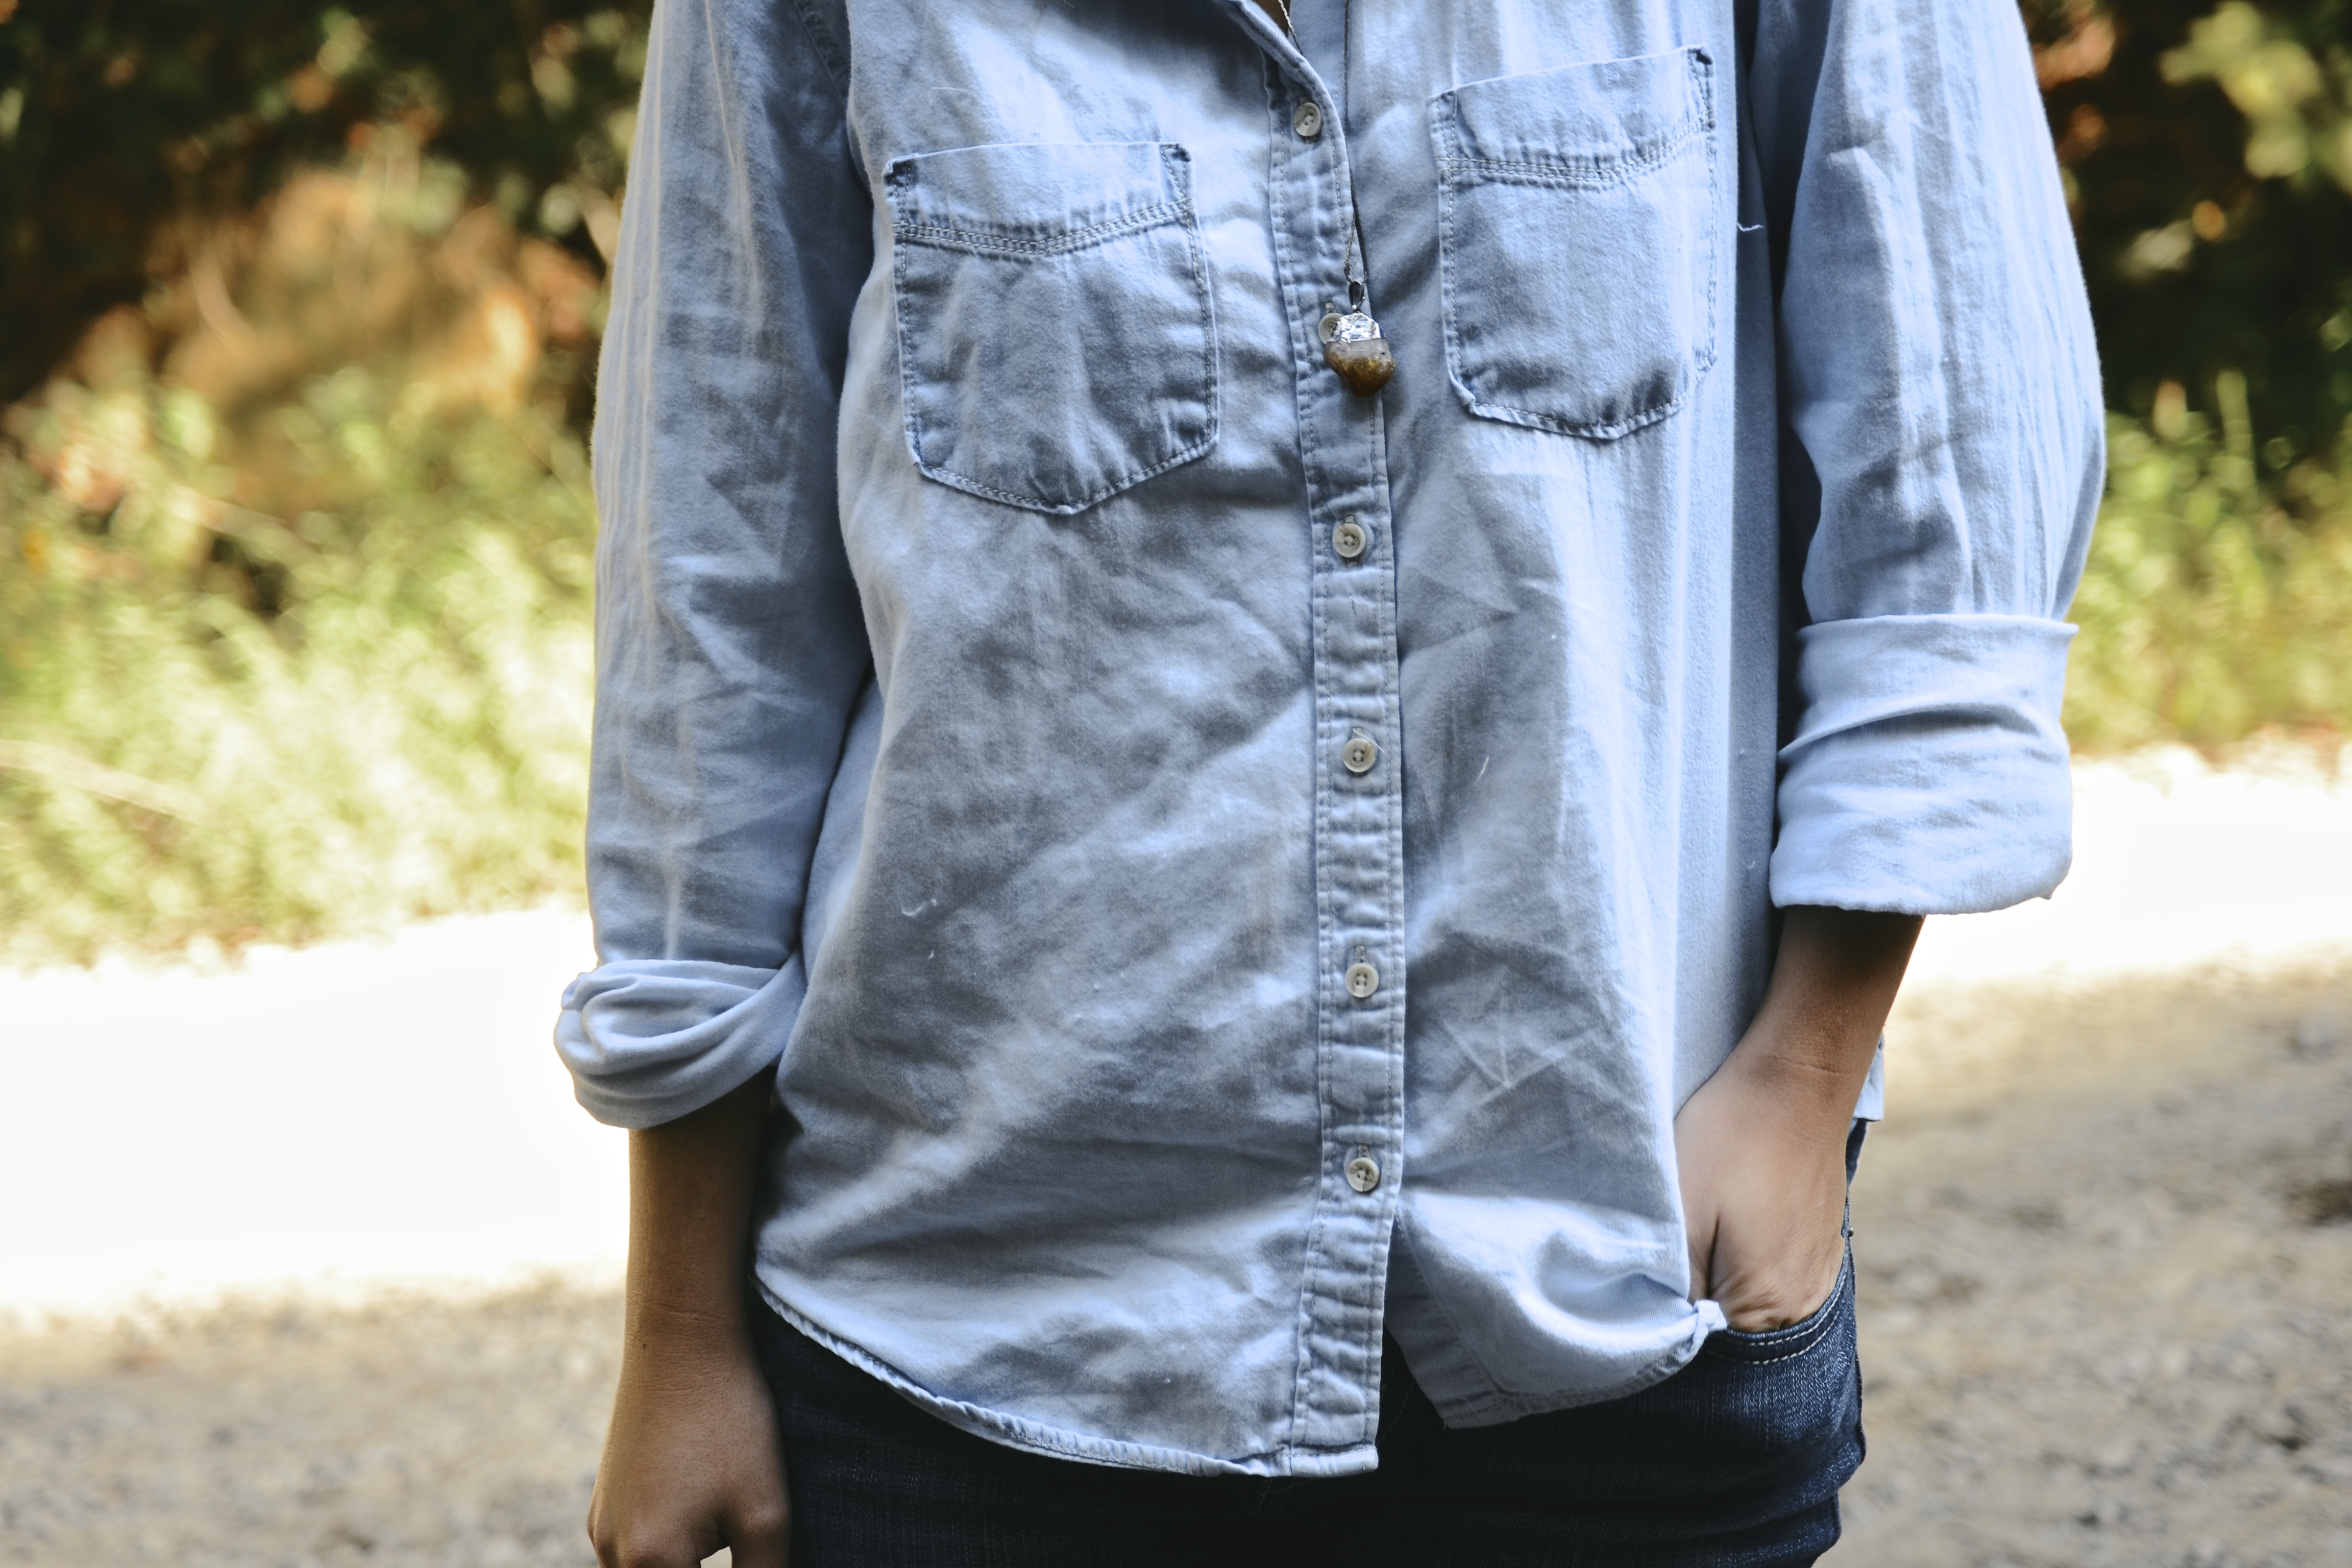 Person's torso wearing a denim chambray shirt with cuffed sleeves